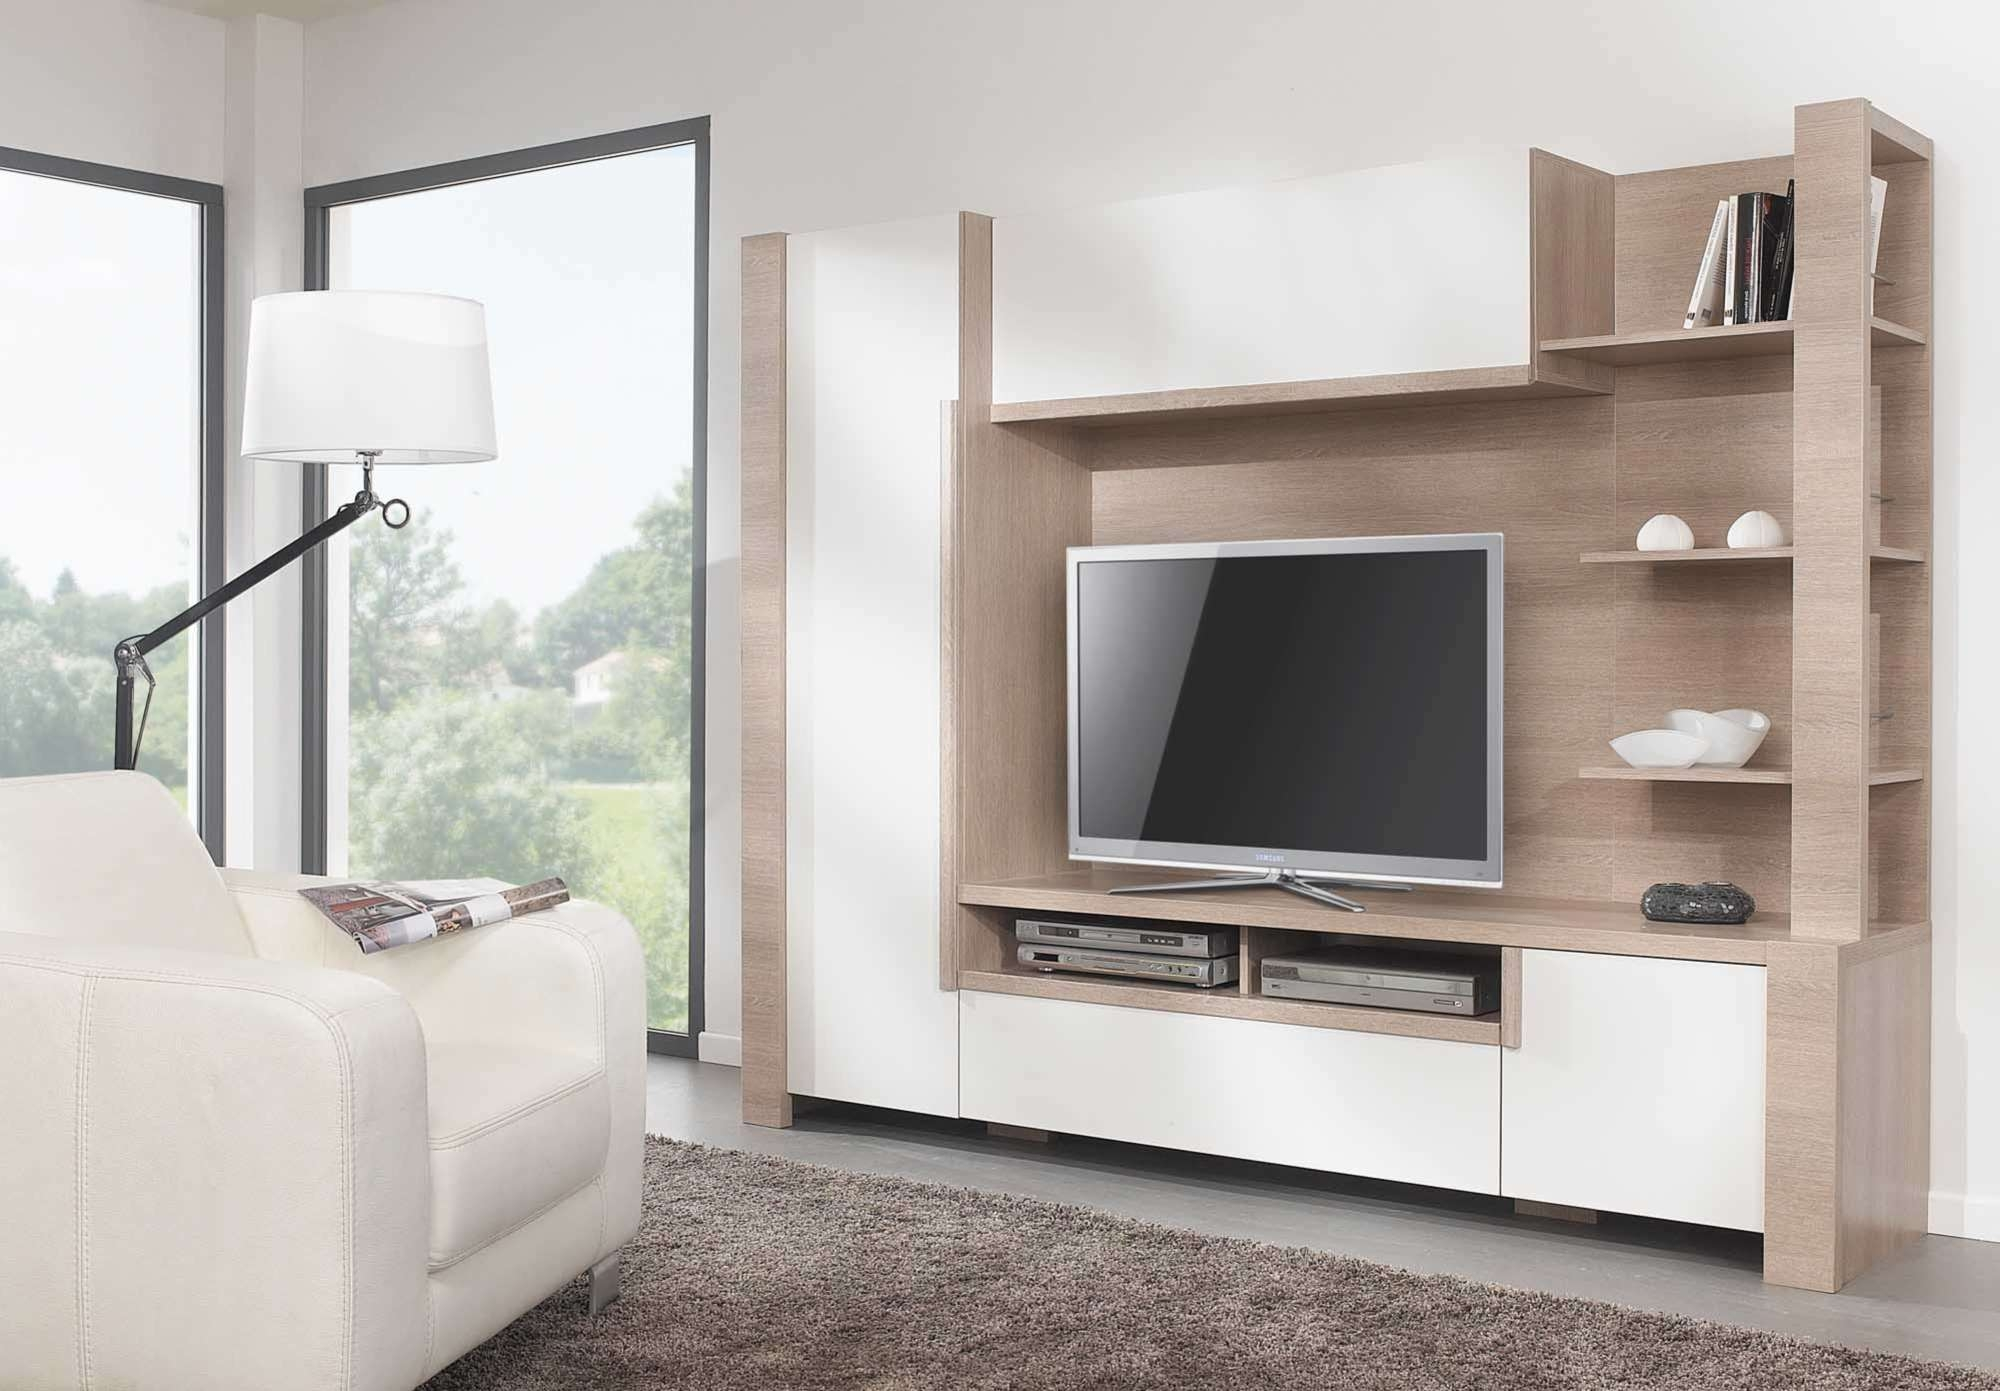 Image Gallery of Tv Cabinets And Bookcase (View 20 of 20 Photos)